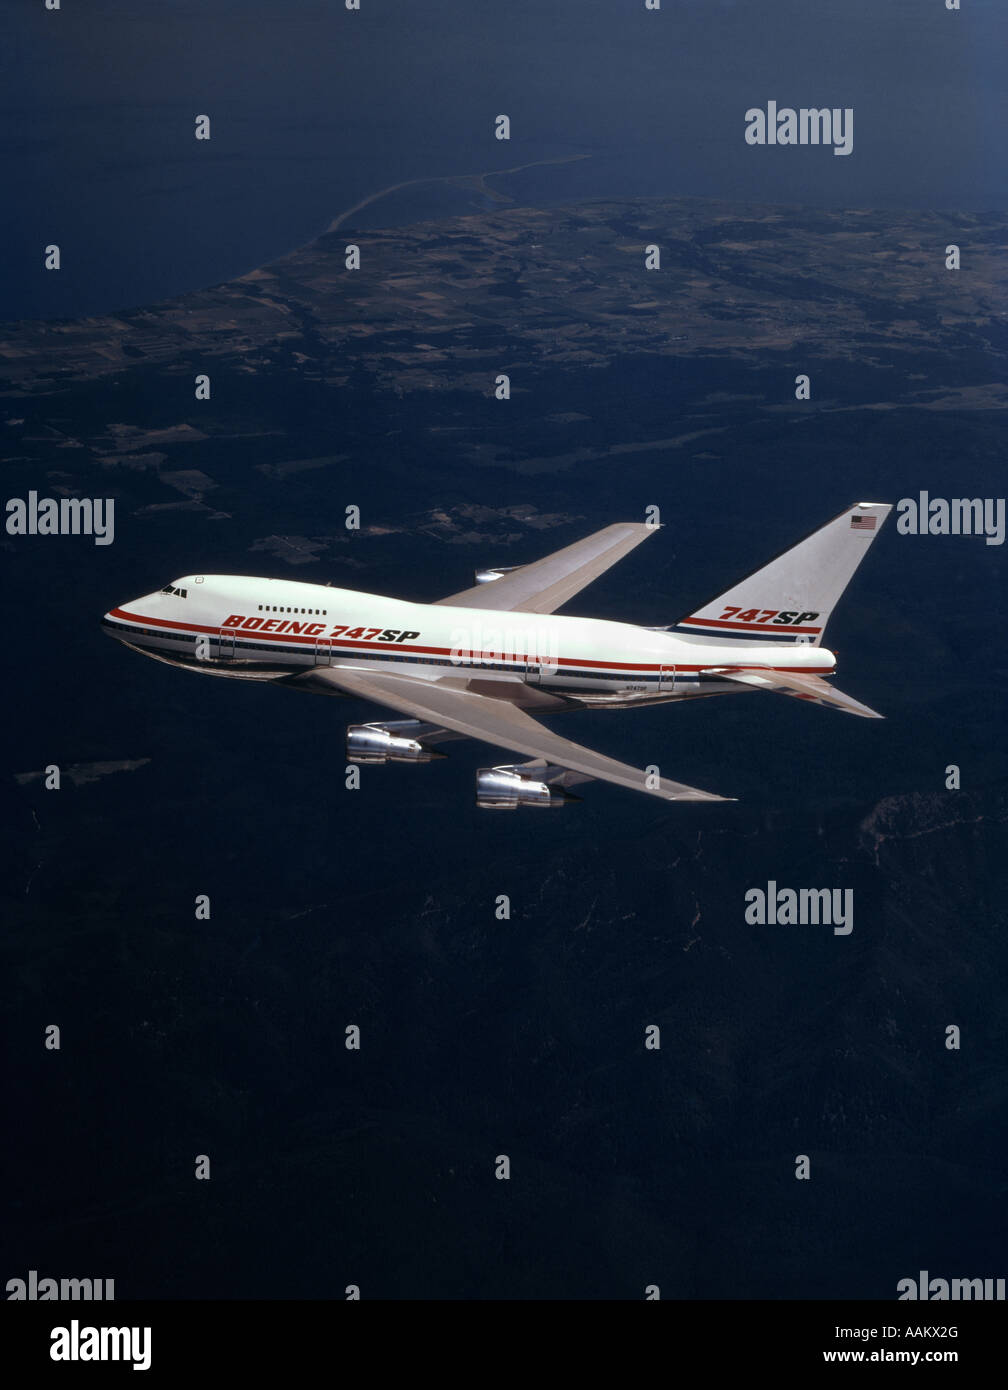 BOEING 747 SP AIRCRAFT IN AIR ALOFT JET PASSENGER COMMERCIAL AIRLINER - Stock Image